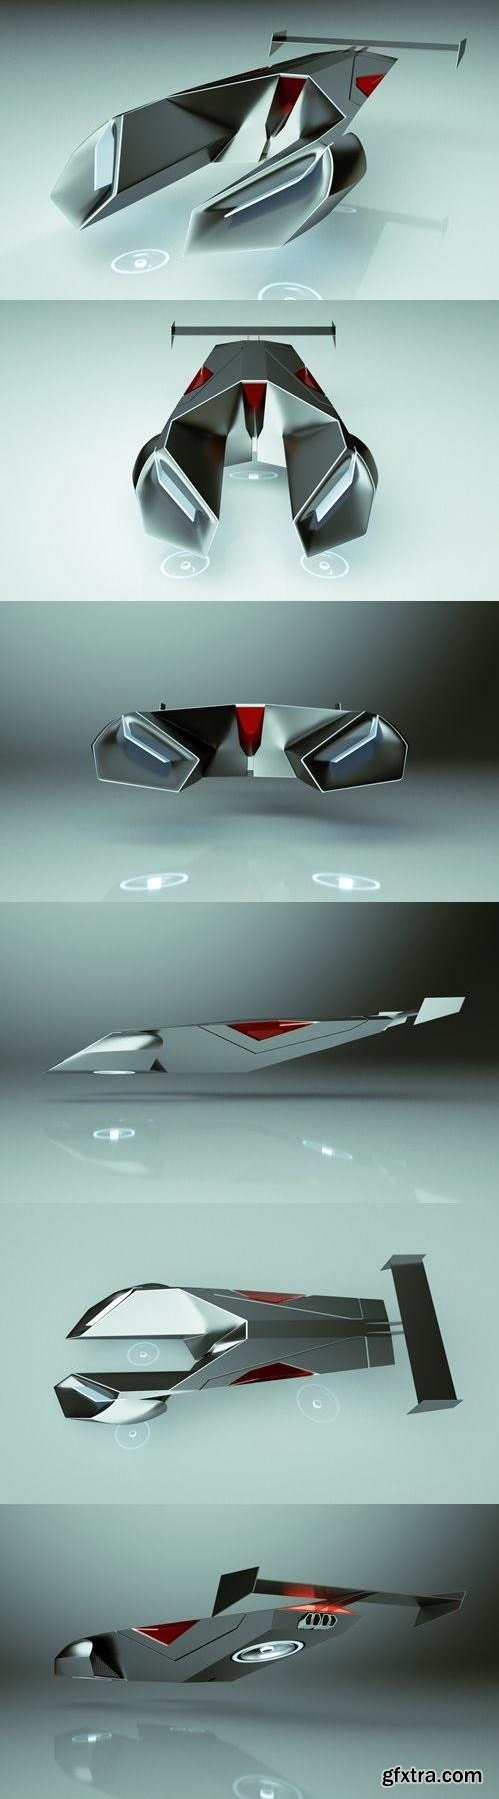 T-Hover Car 05 Scorpion – Cheap & Cool series - 3D Model